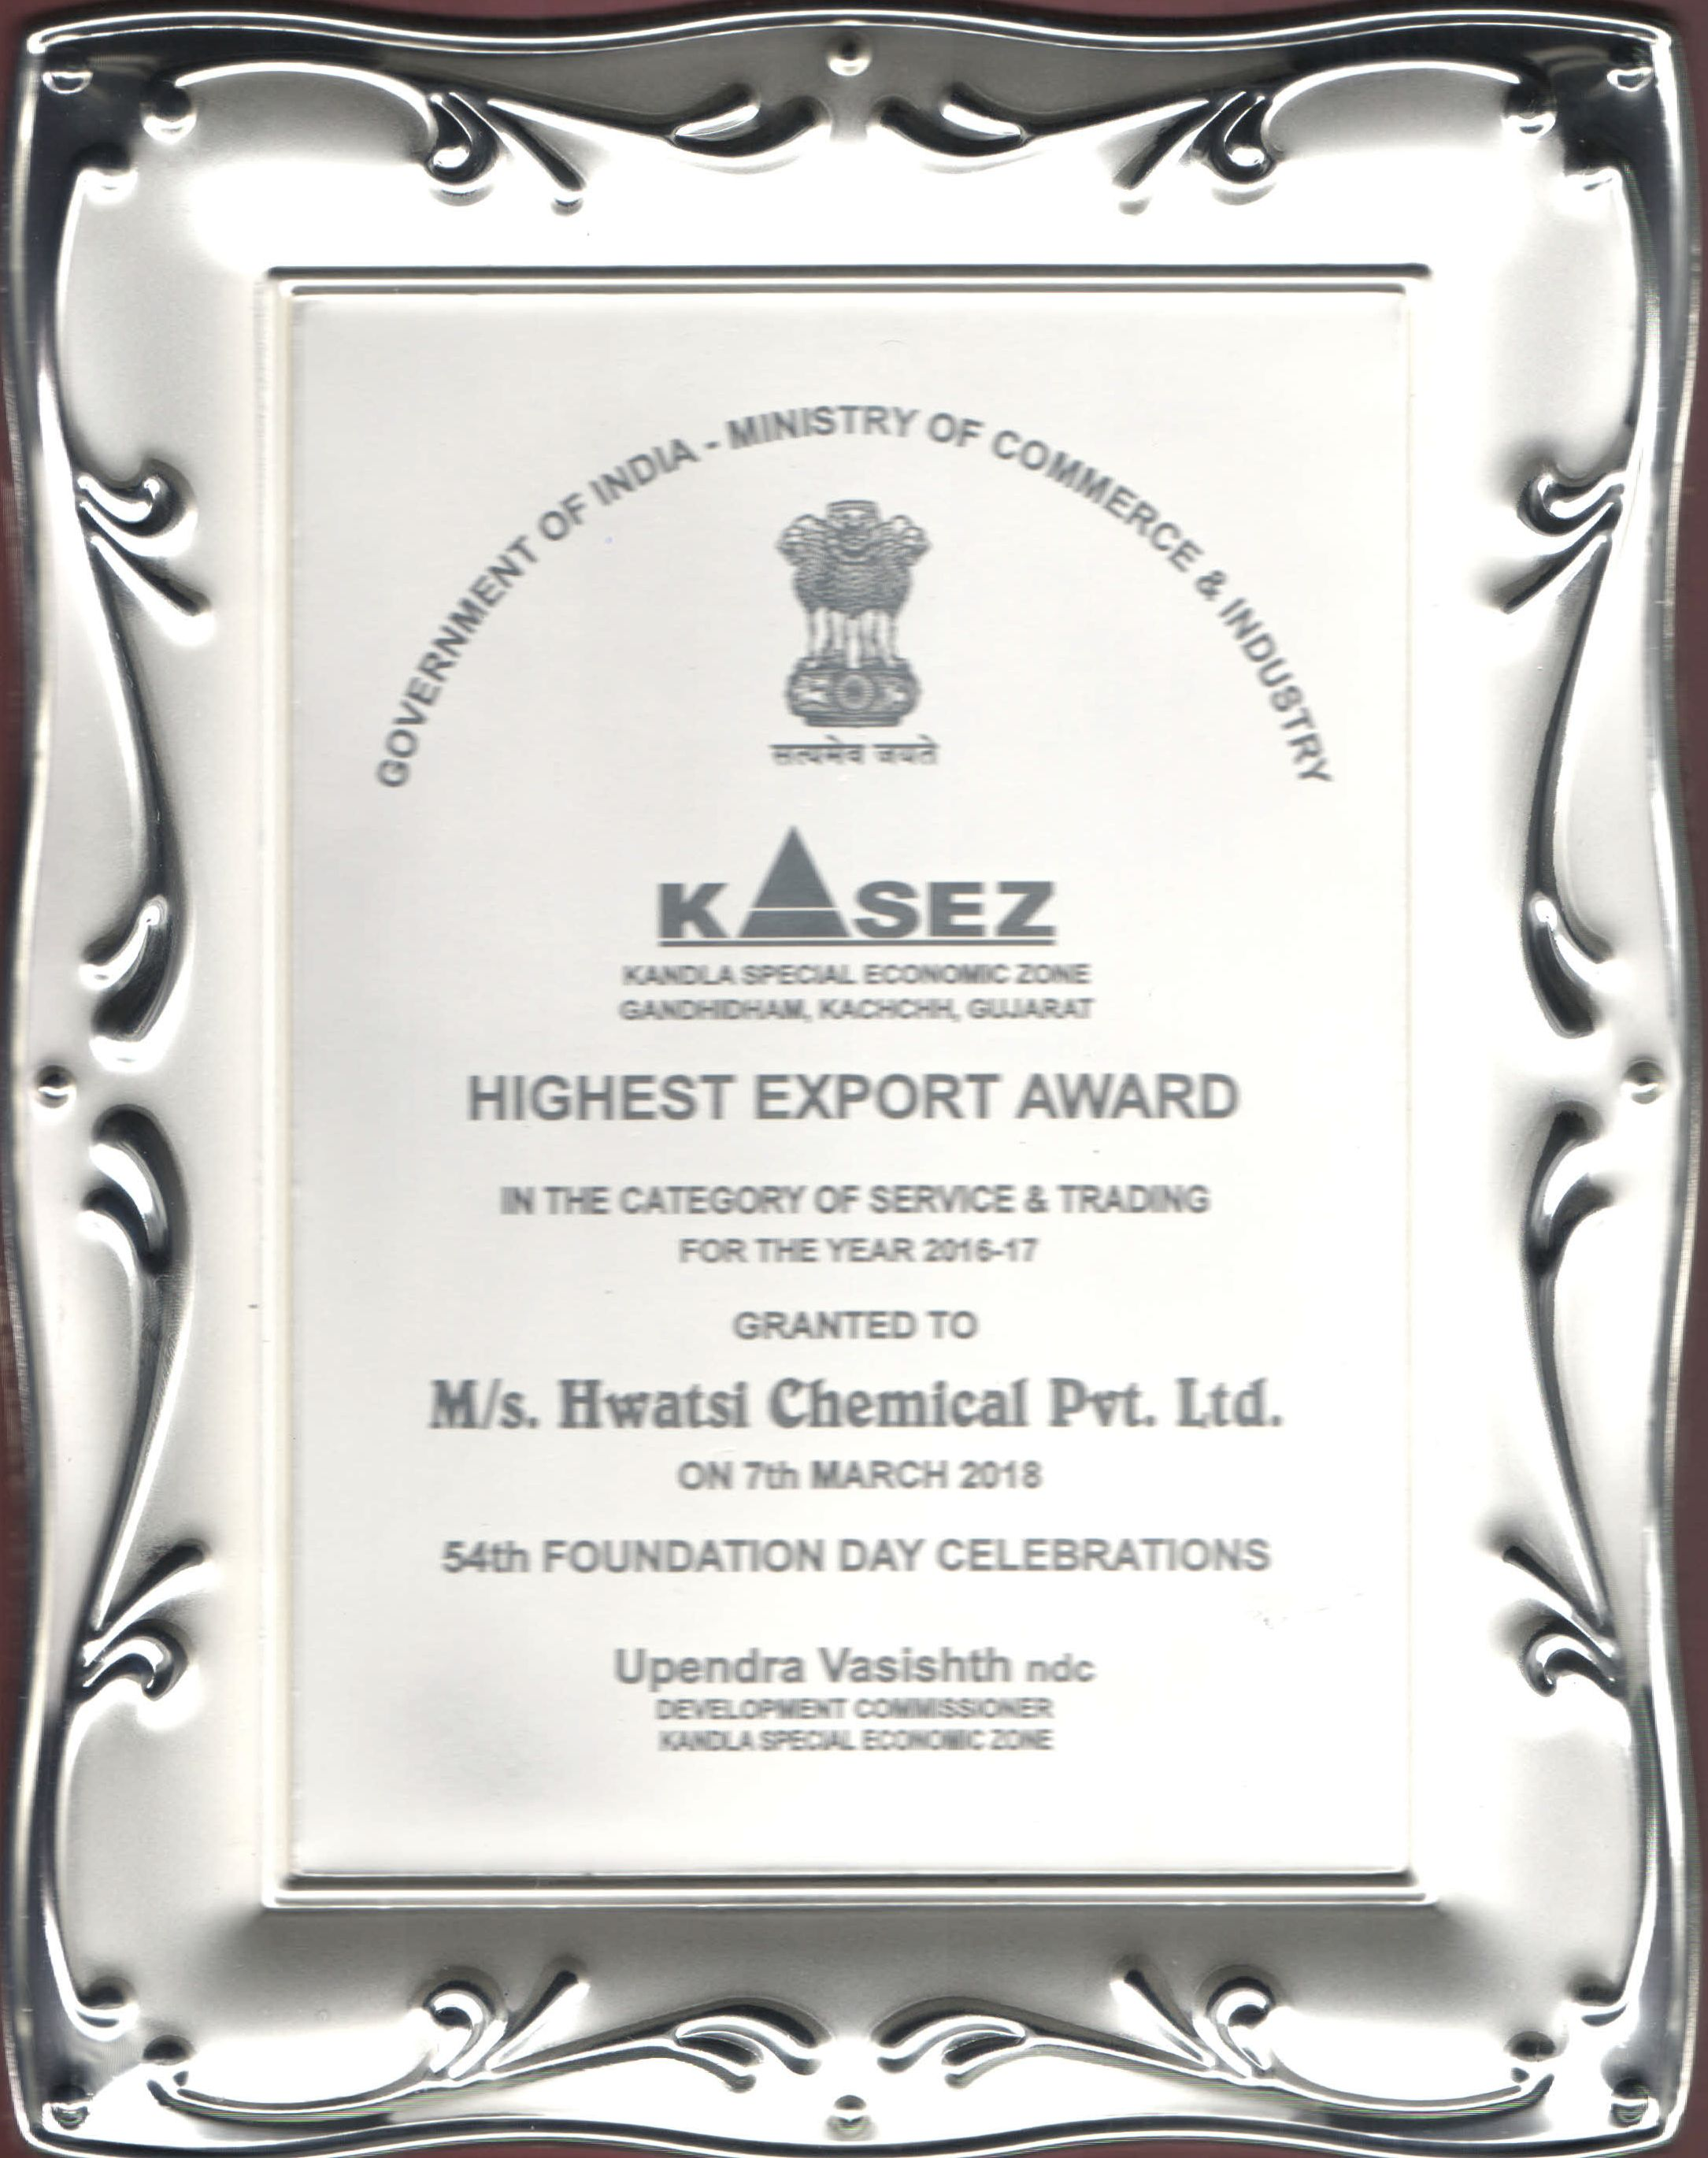 Highest Export Award